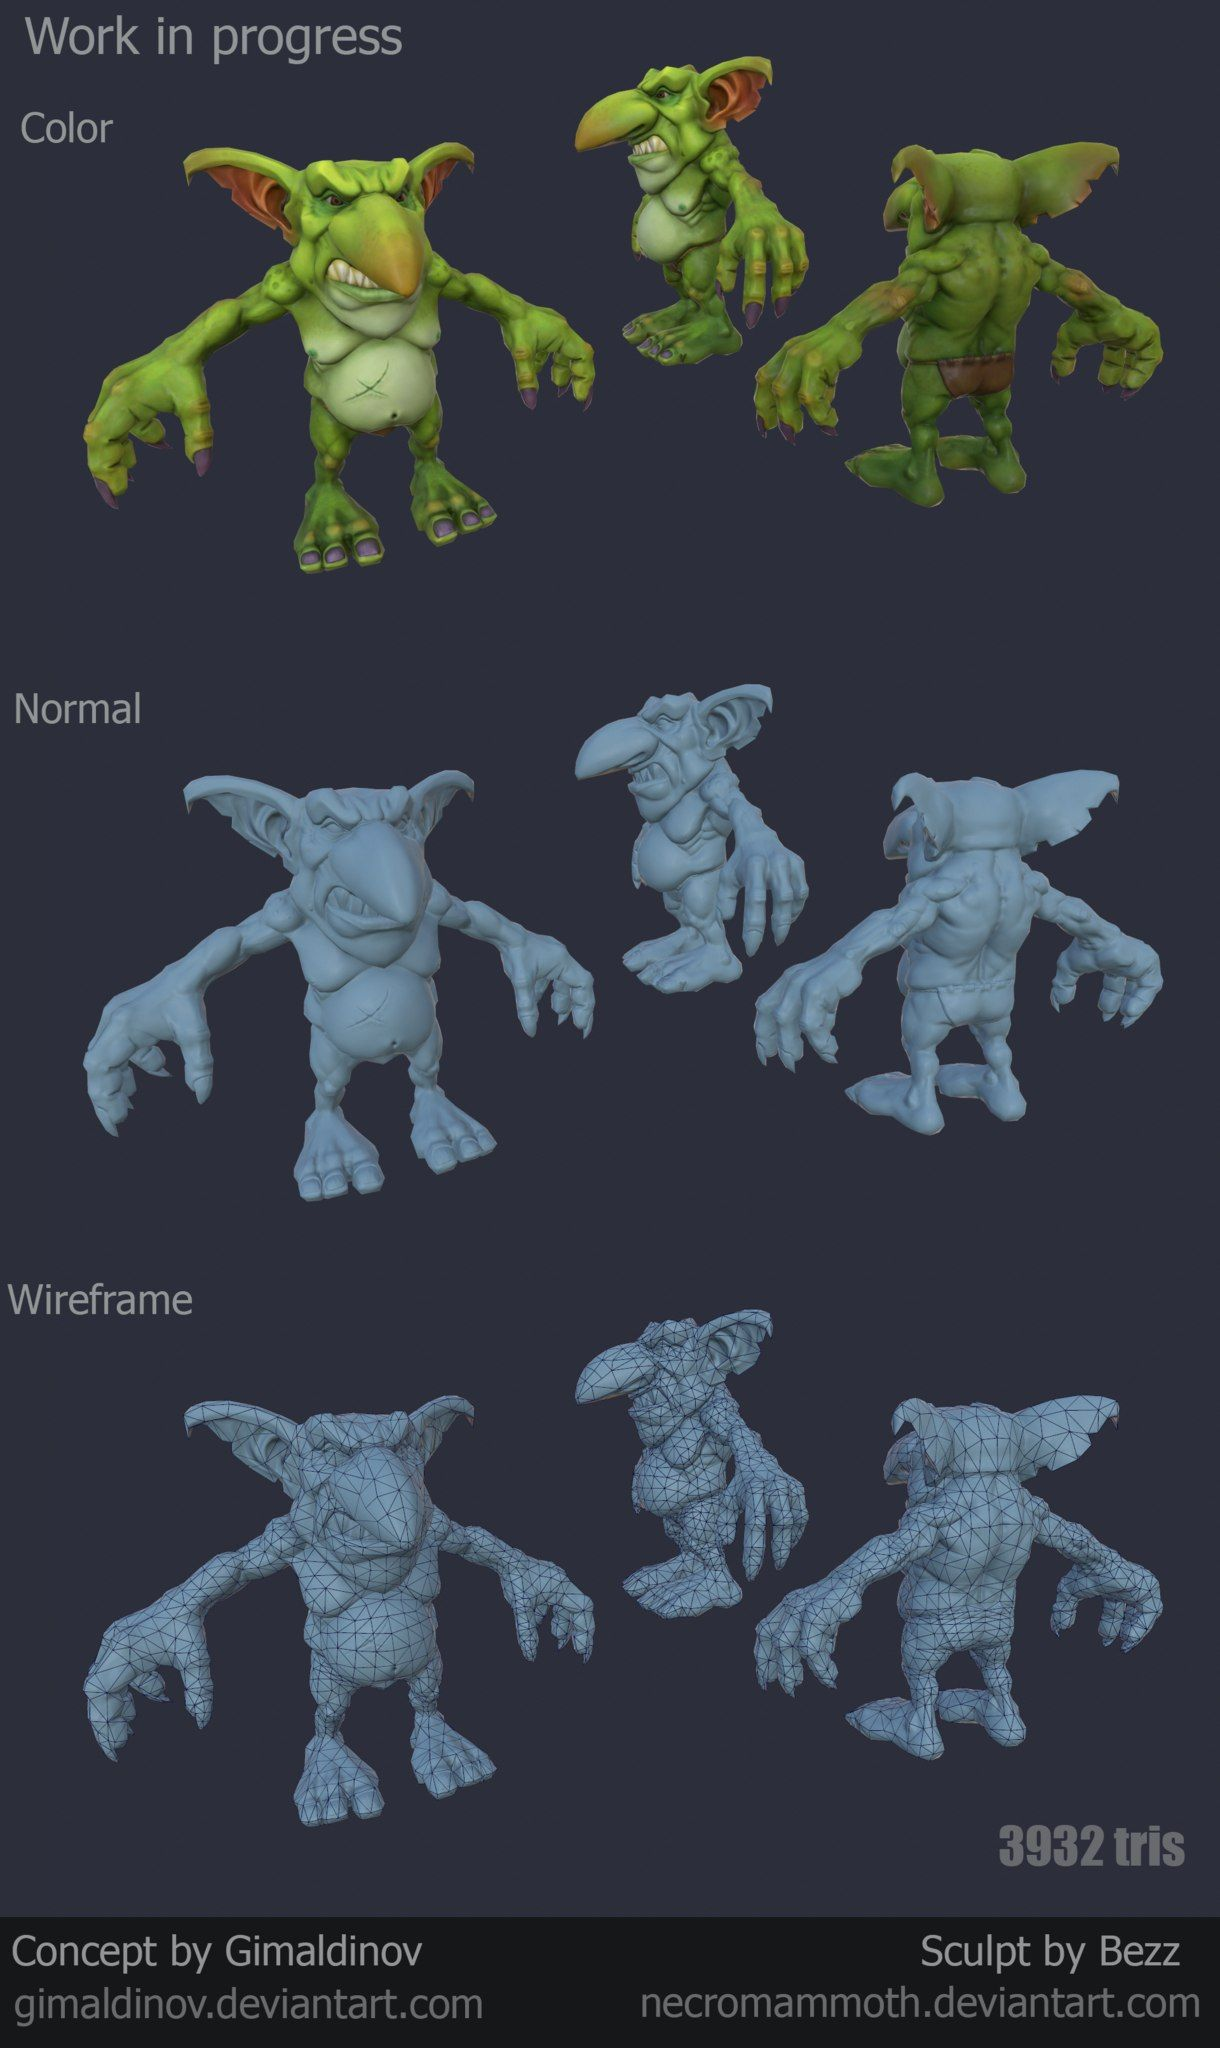 What Are You Working On? 2015!!! - Page 77 - Polycount Forum